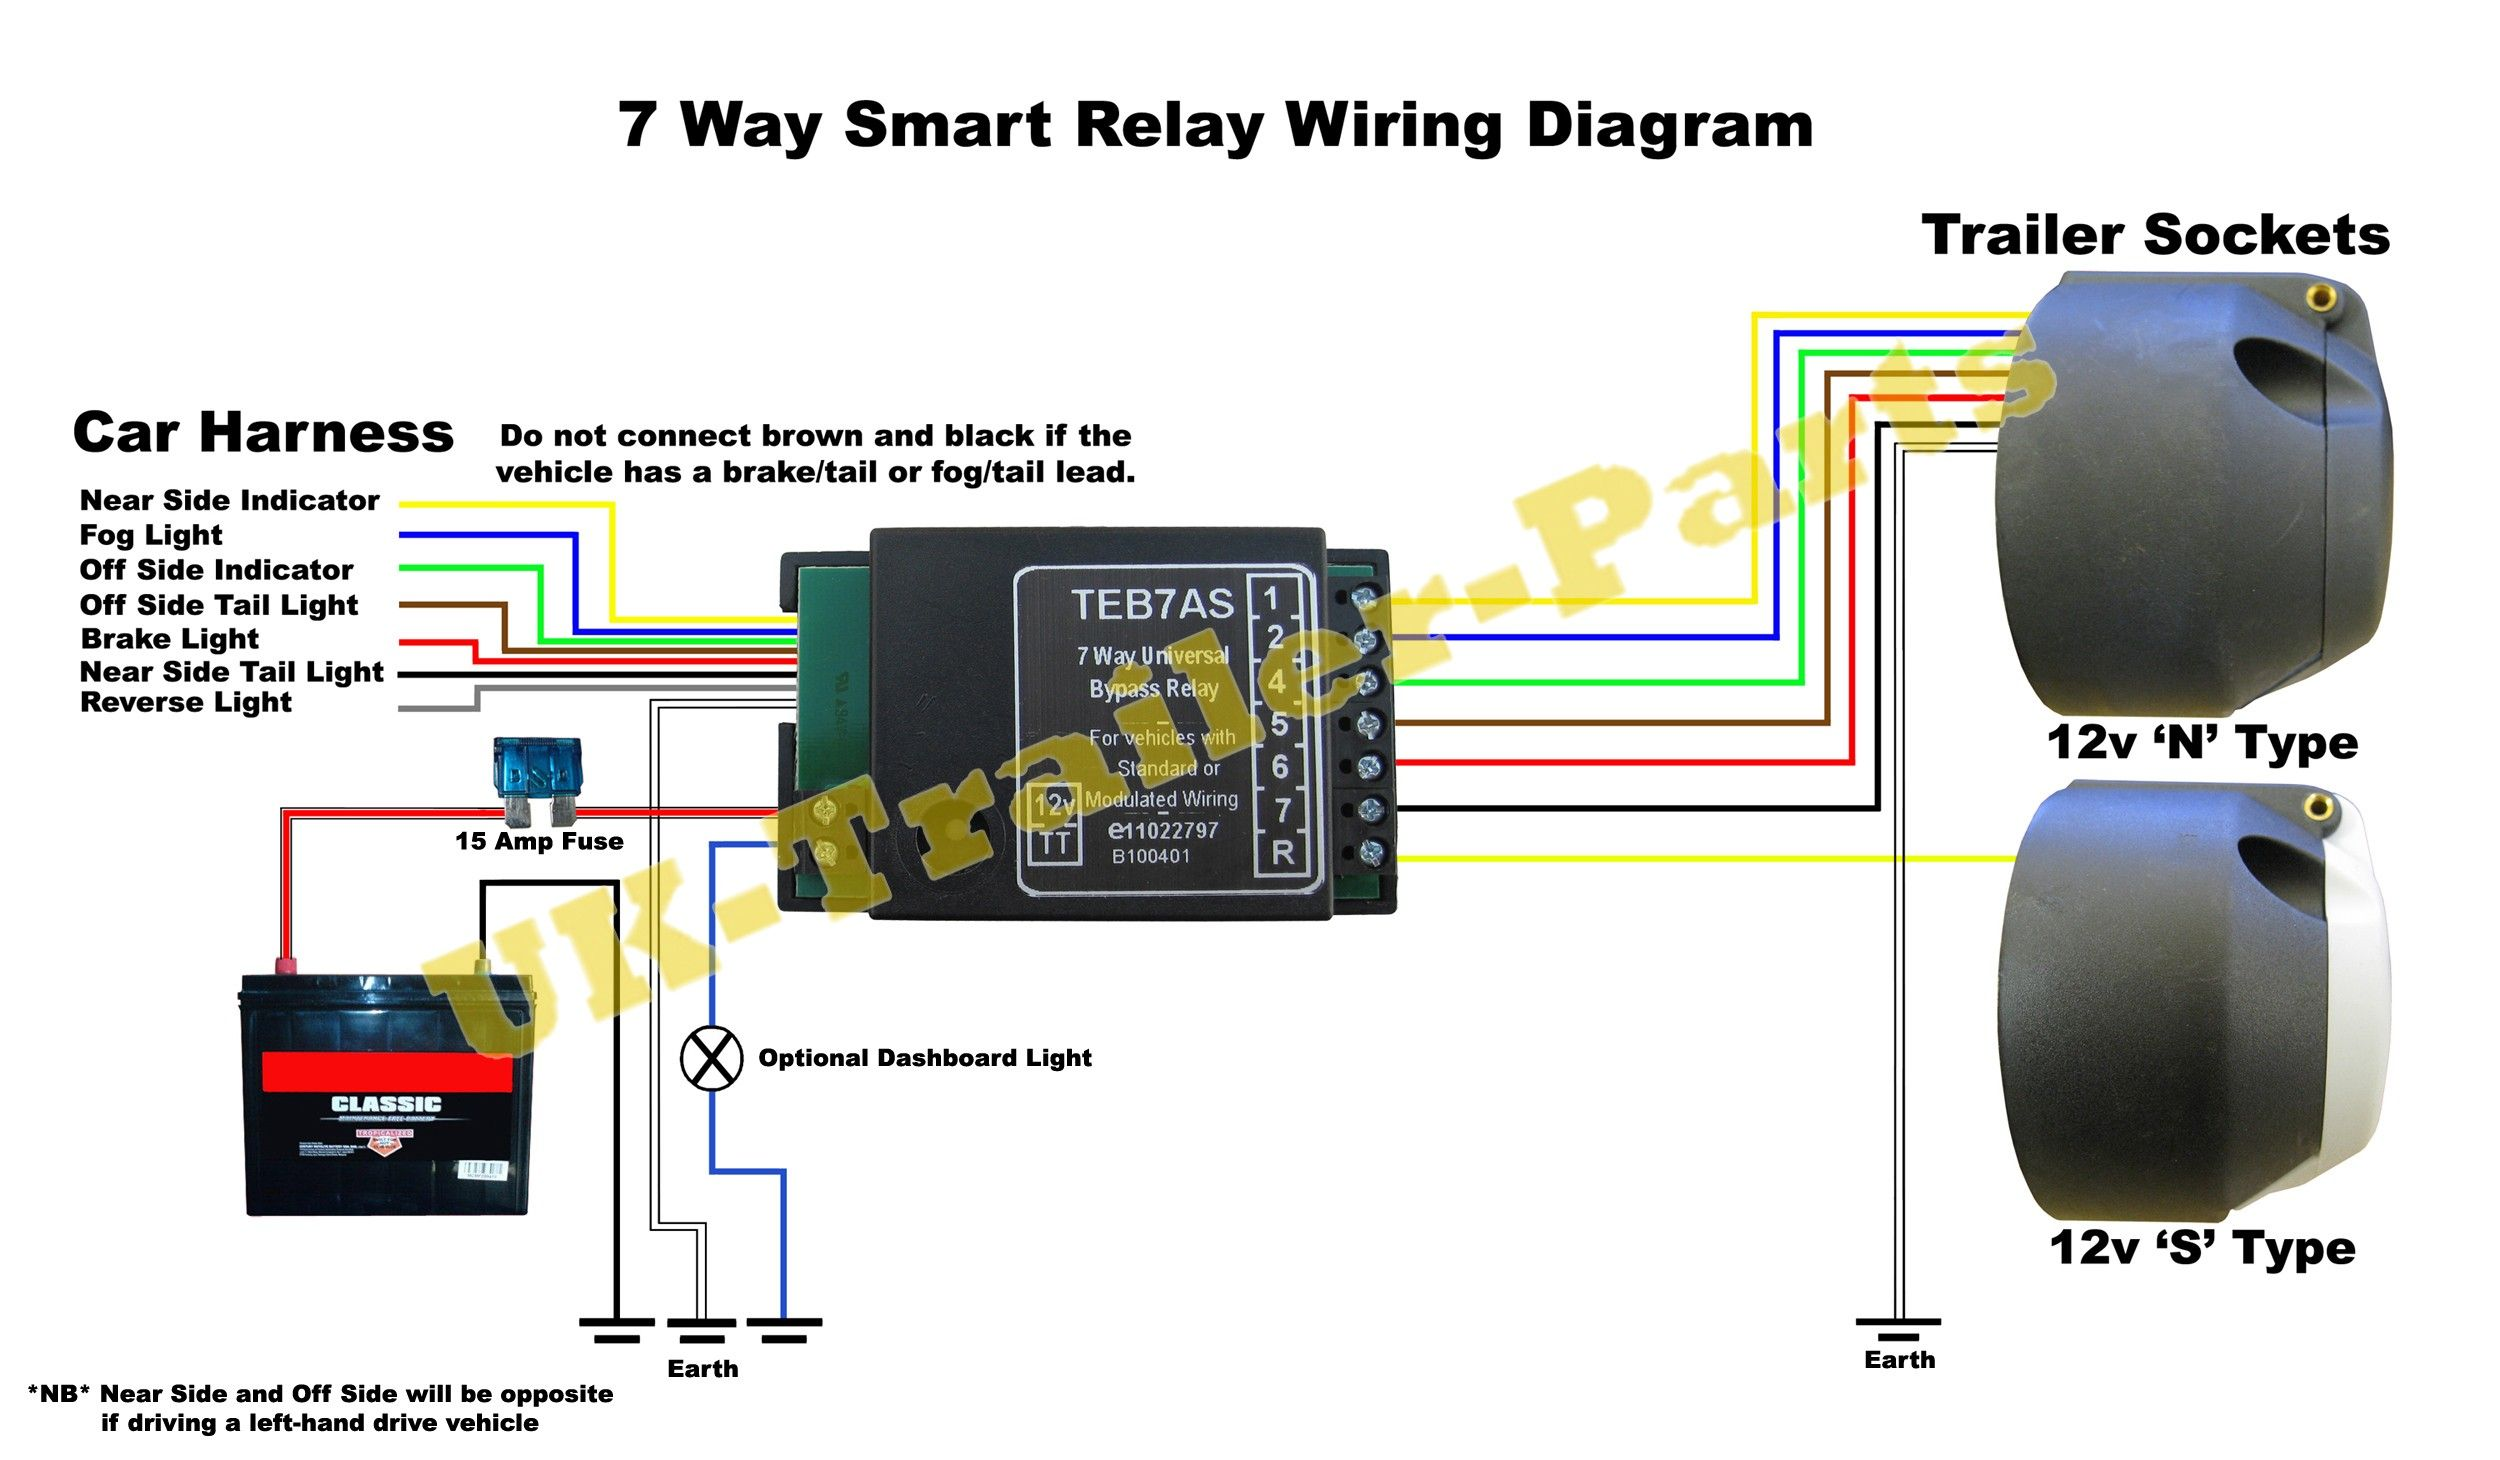 Trailer Towing 7 Way Universal Bypass Relay